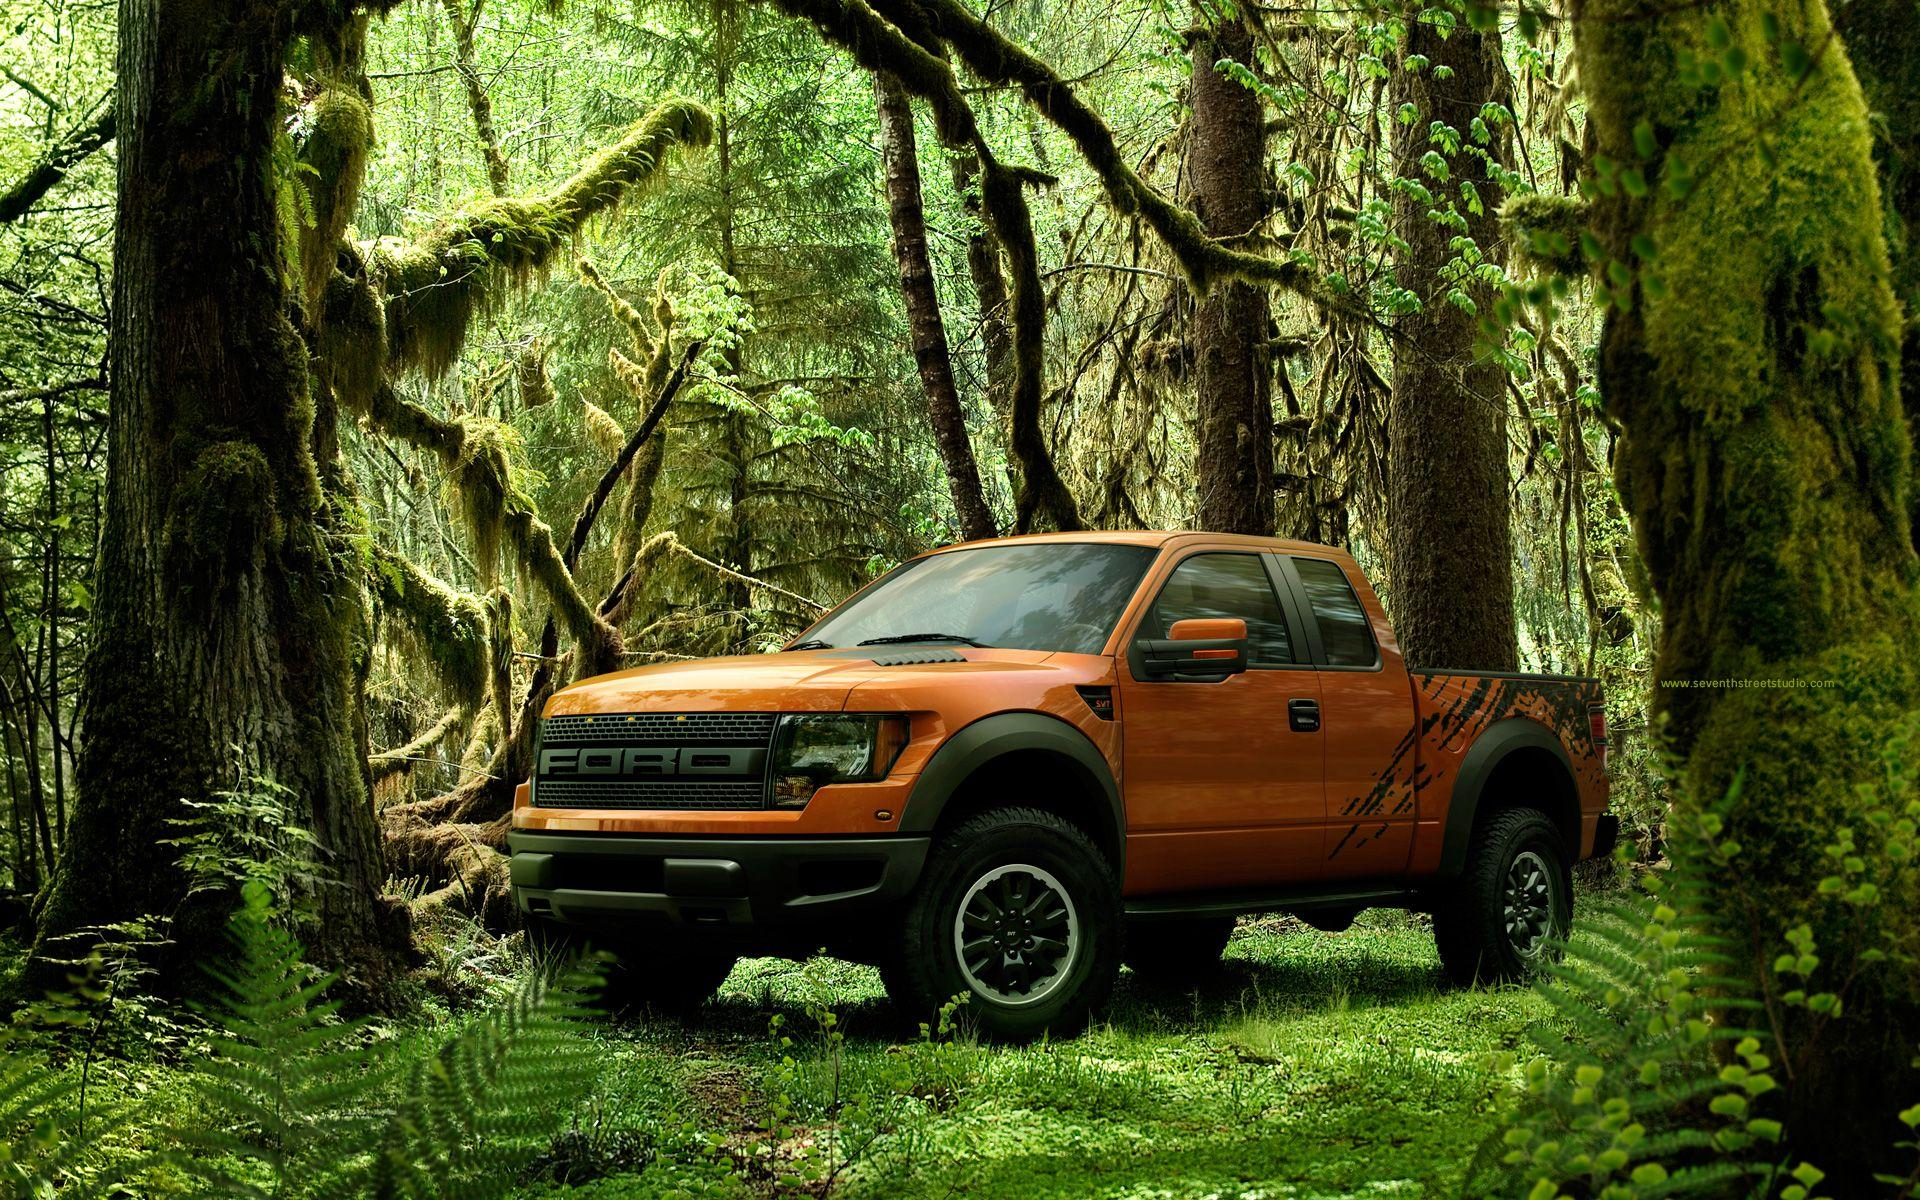 Ford Raptor - Wallpaper, High Definition, High Quality, Widescreen